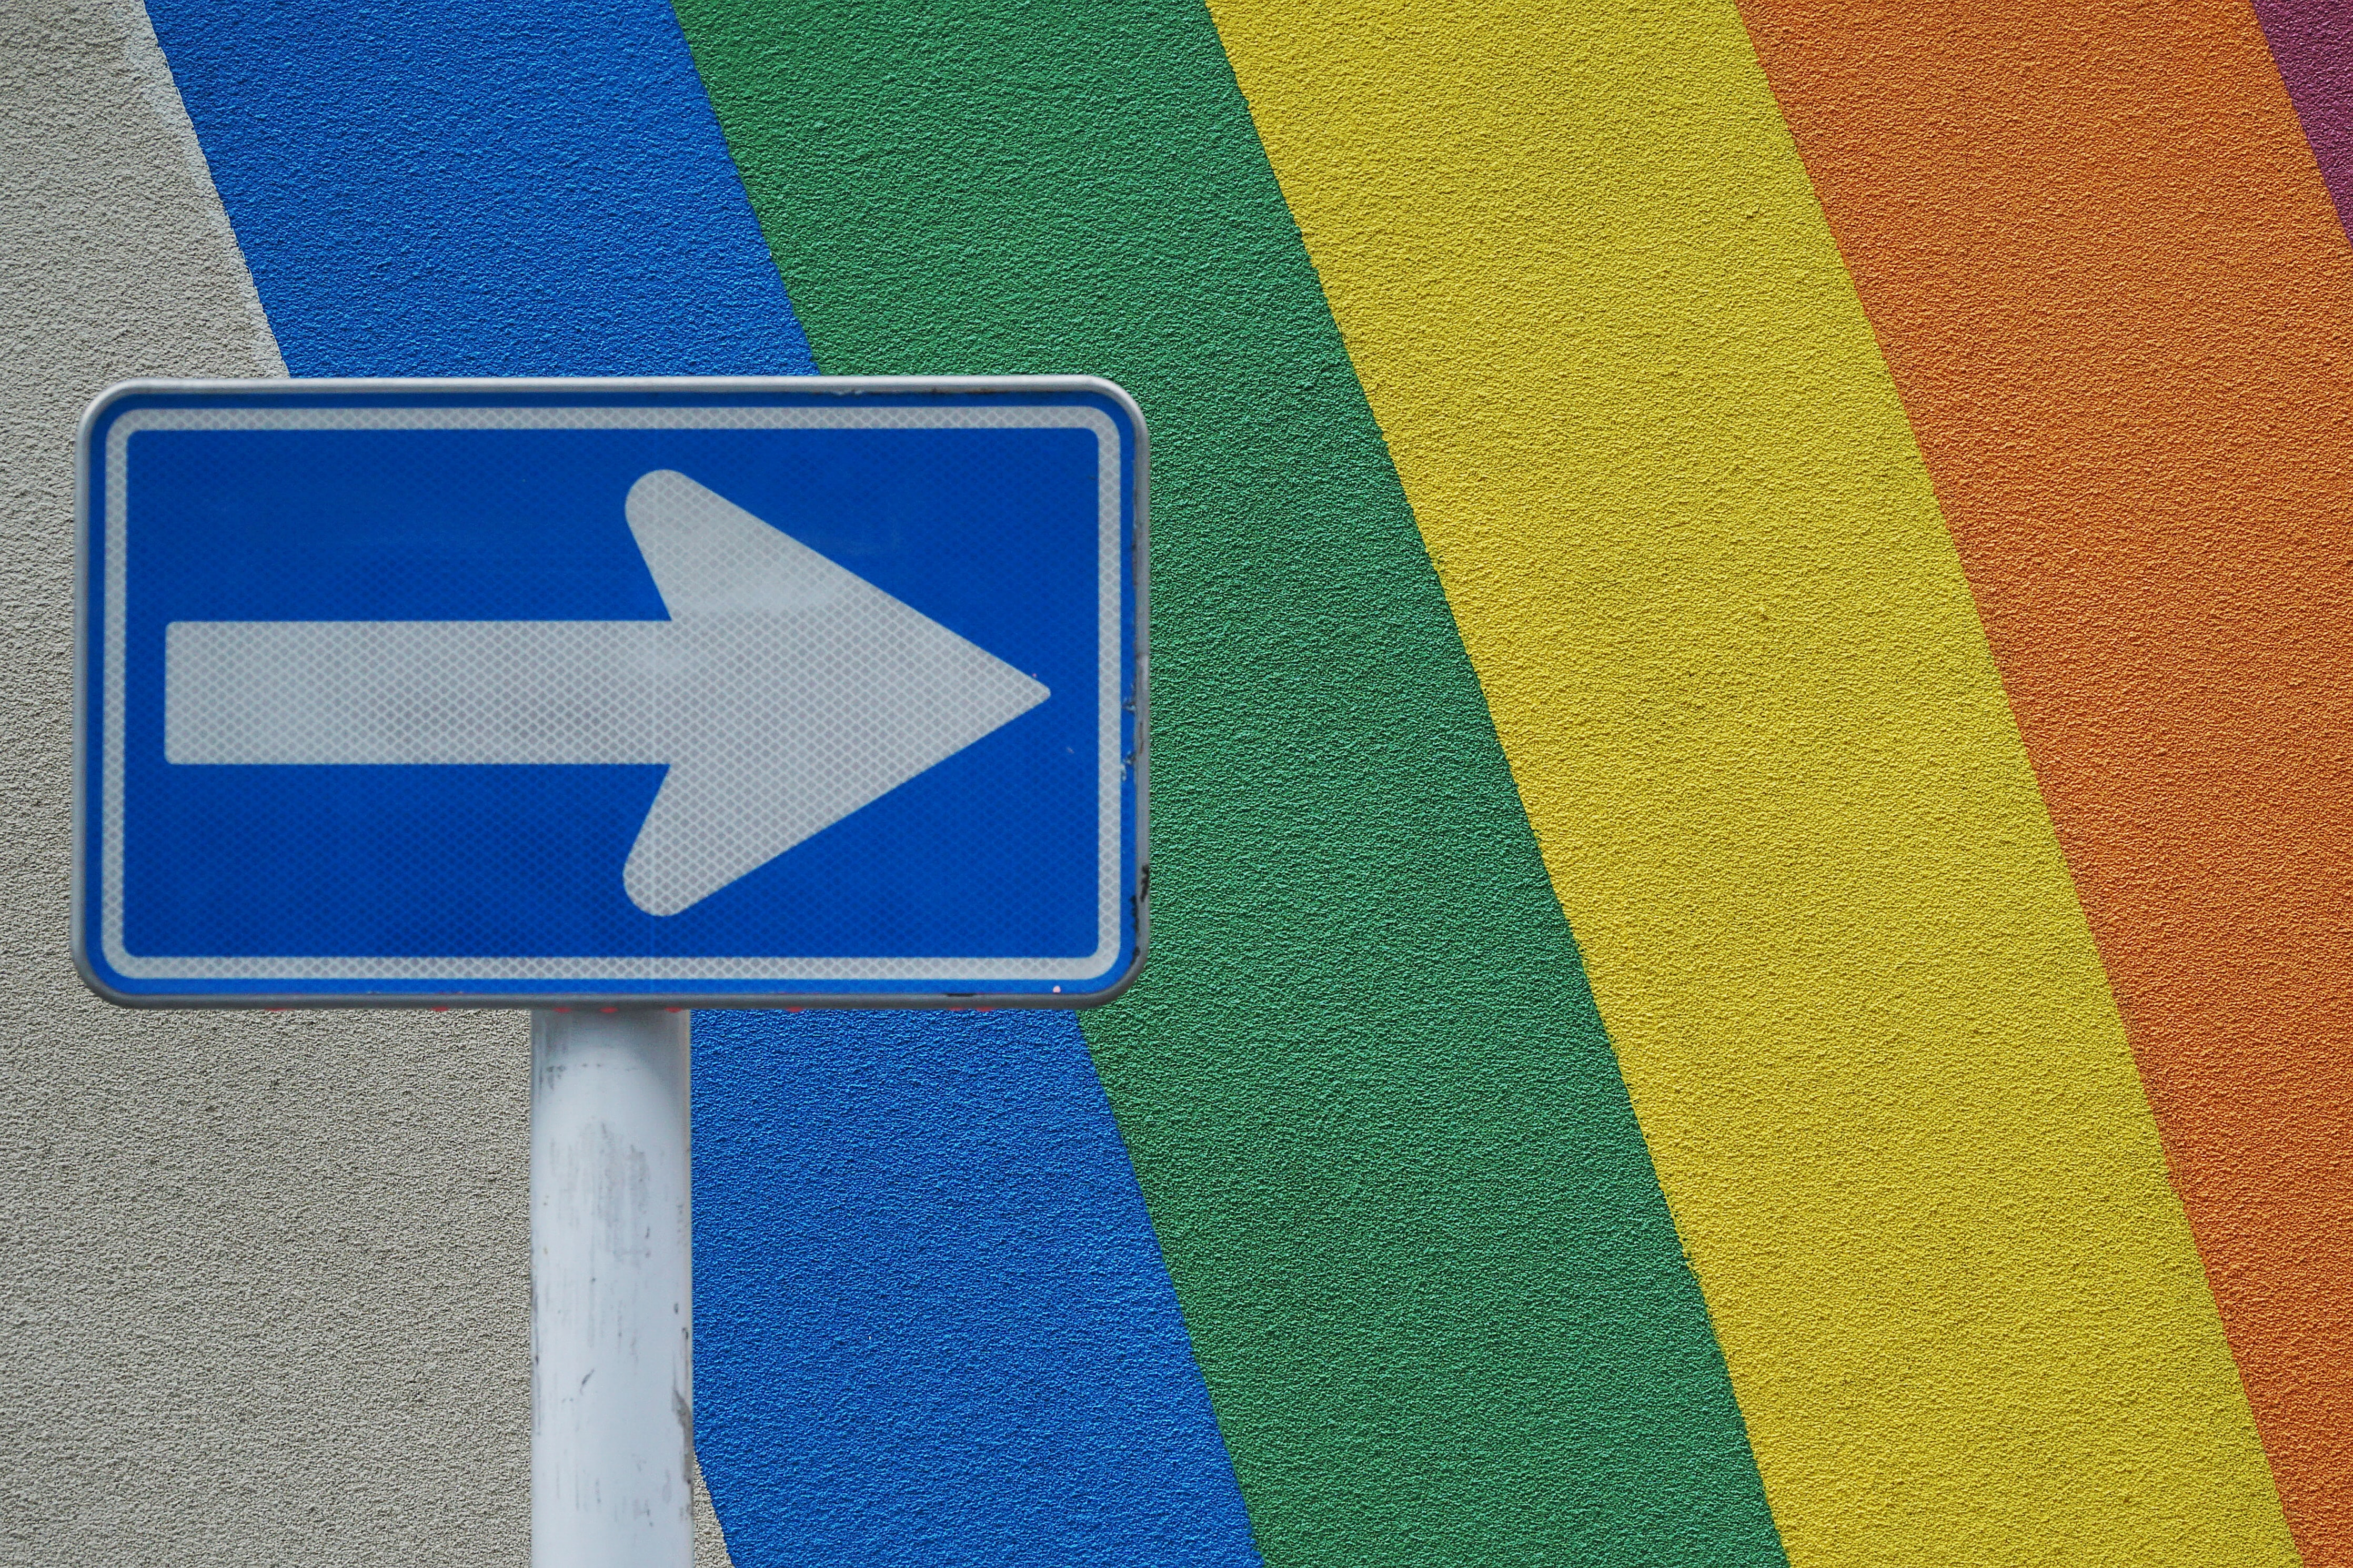 blue and white arrow signage near multicolored wall